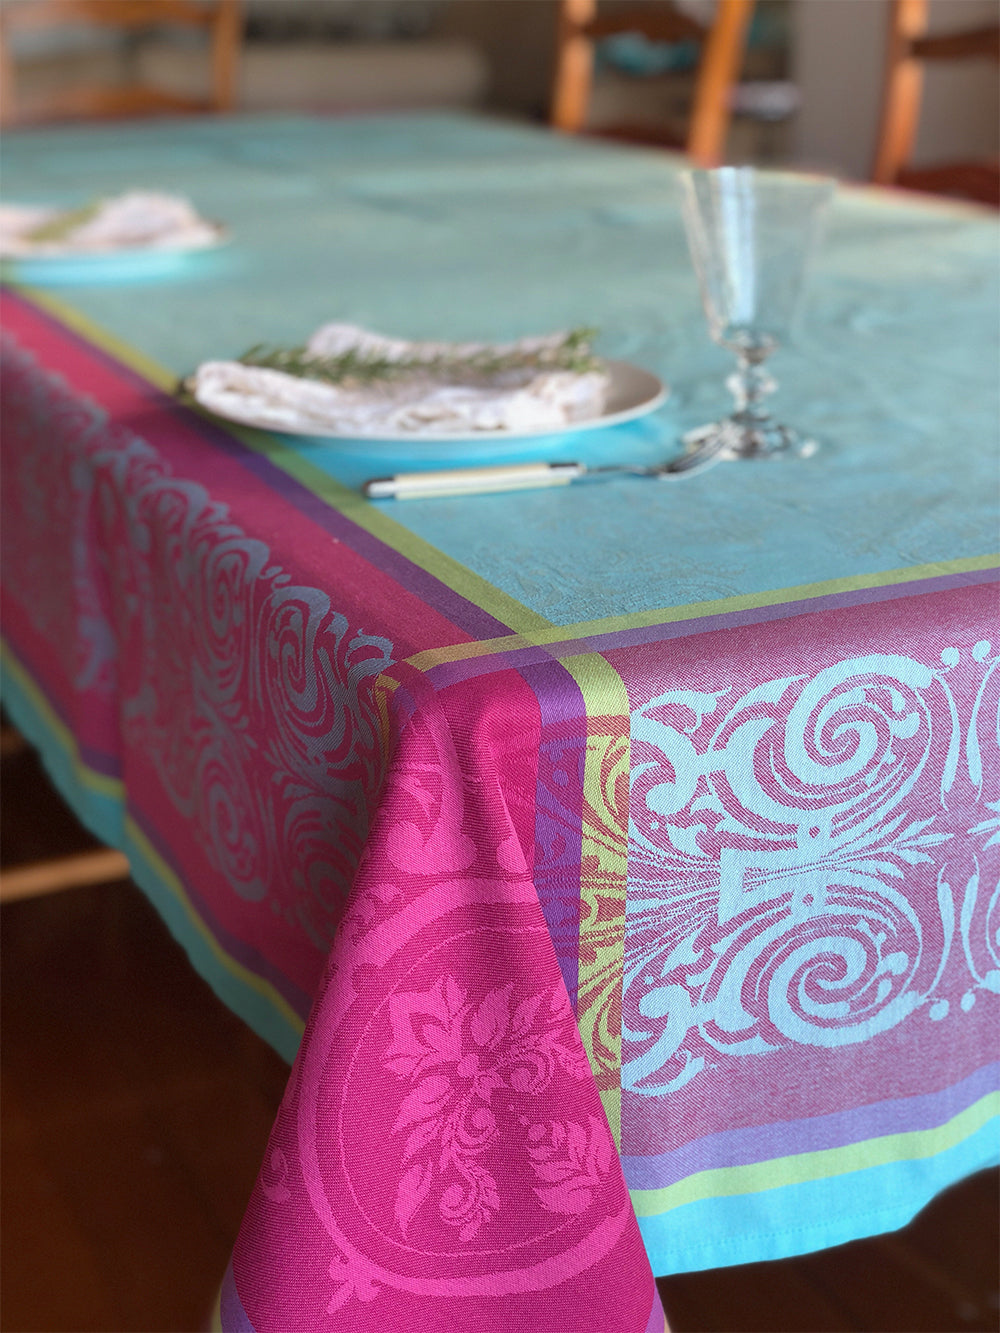 Renaissance Jacquard Coated French Cotton Tablecloth 160x300cm - Blue